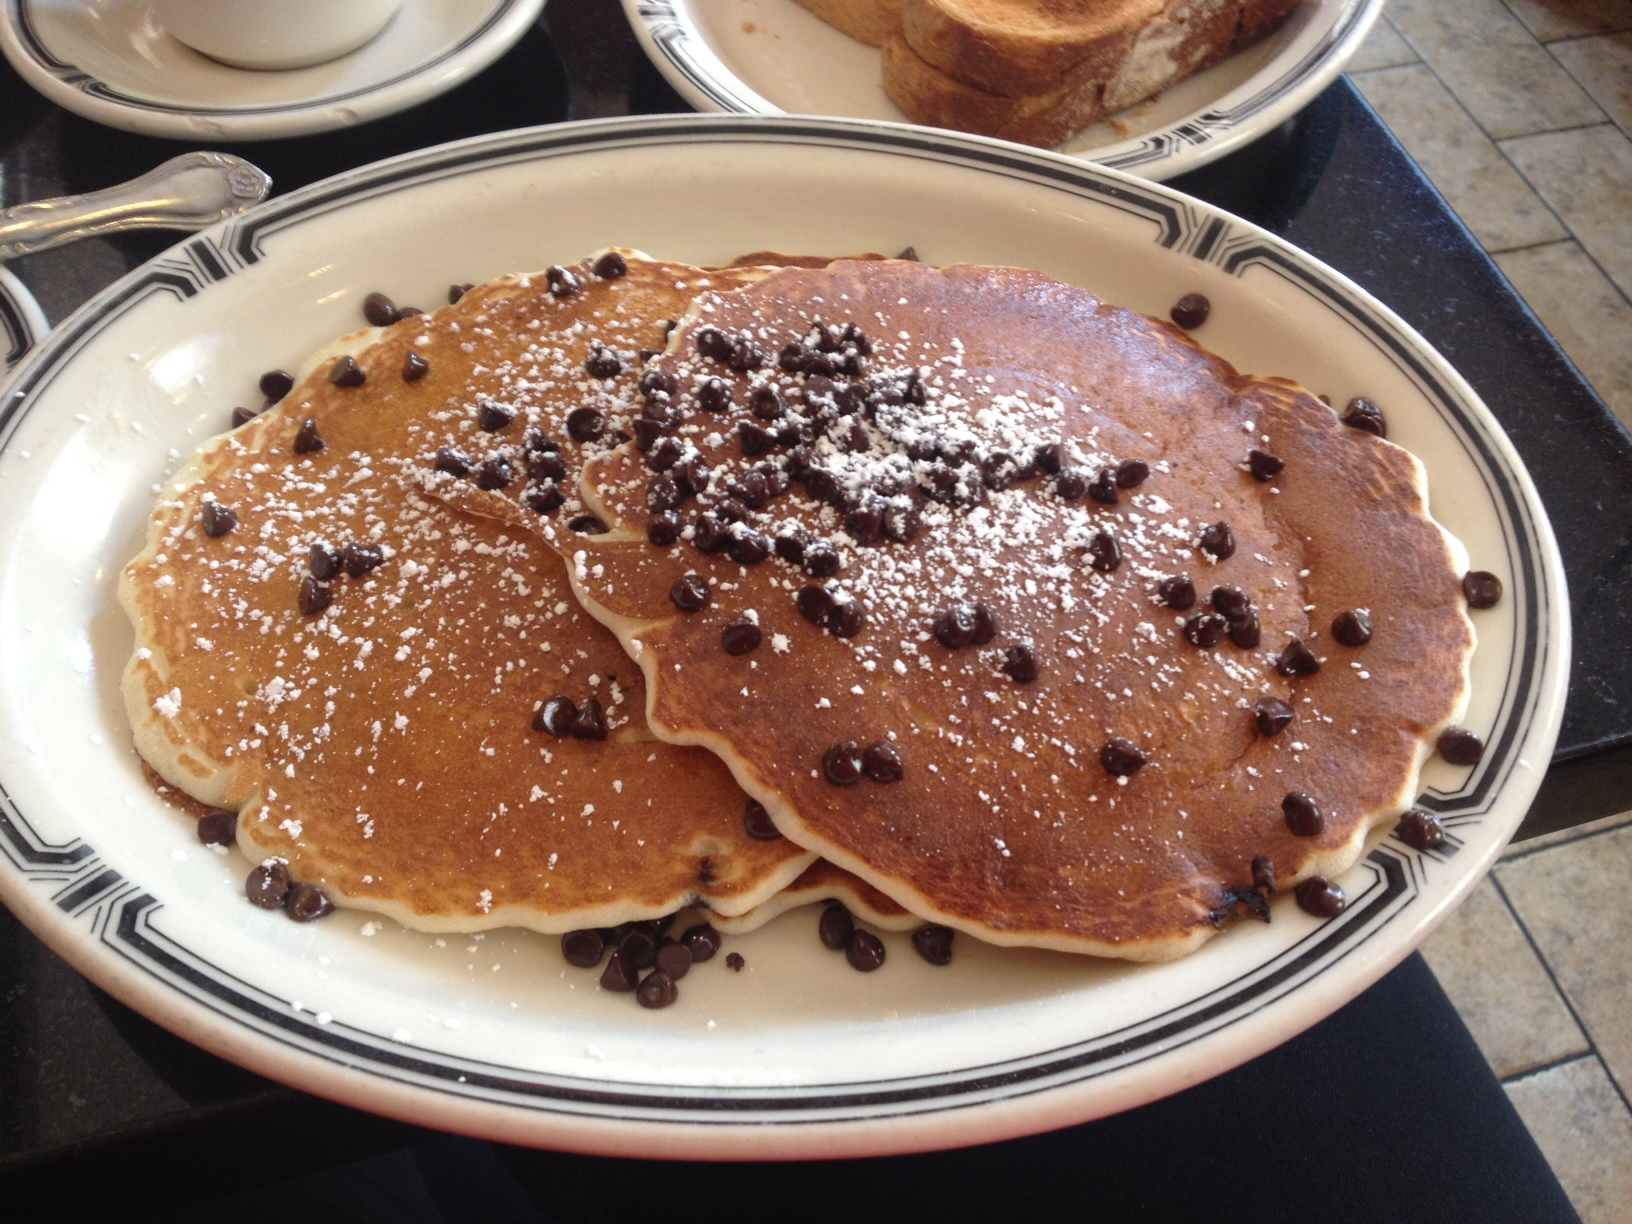 Chocolate Chip Pancakes for the WIN